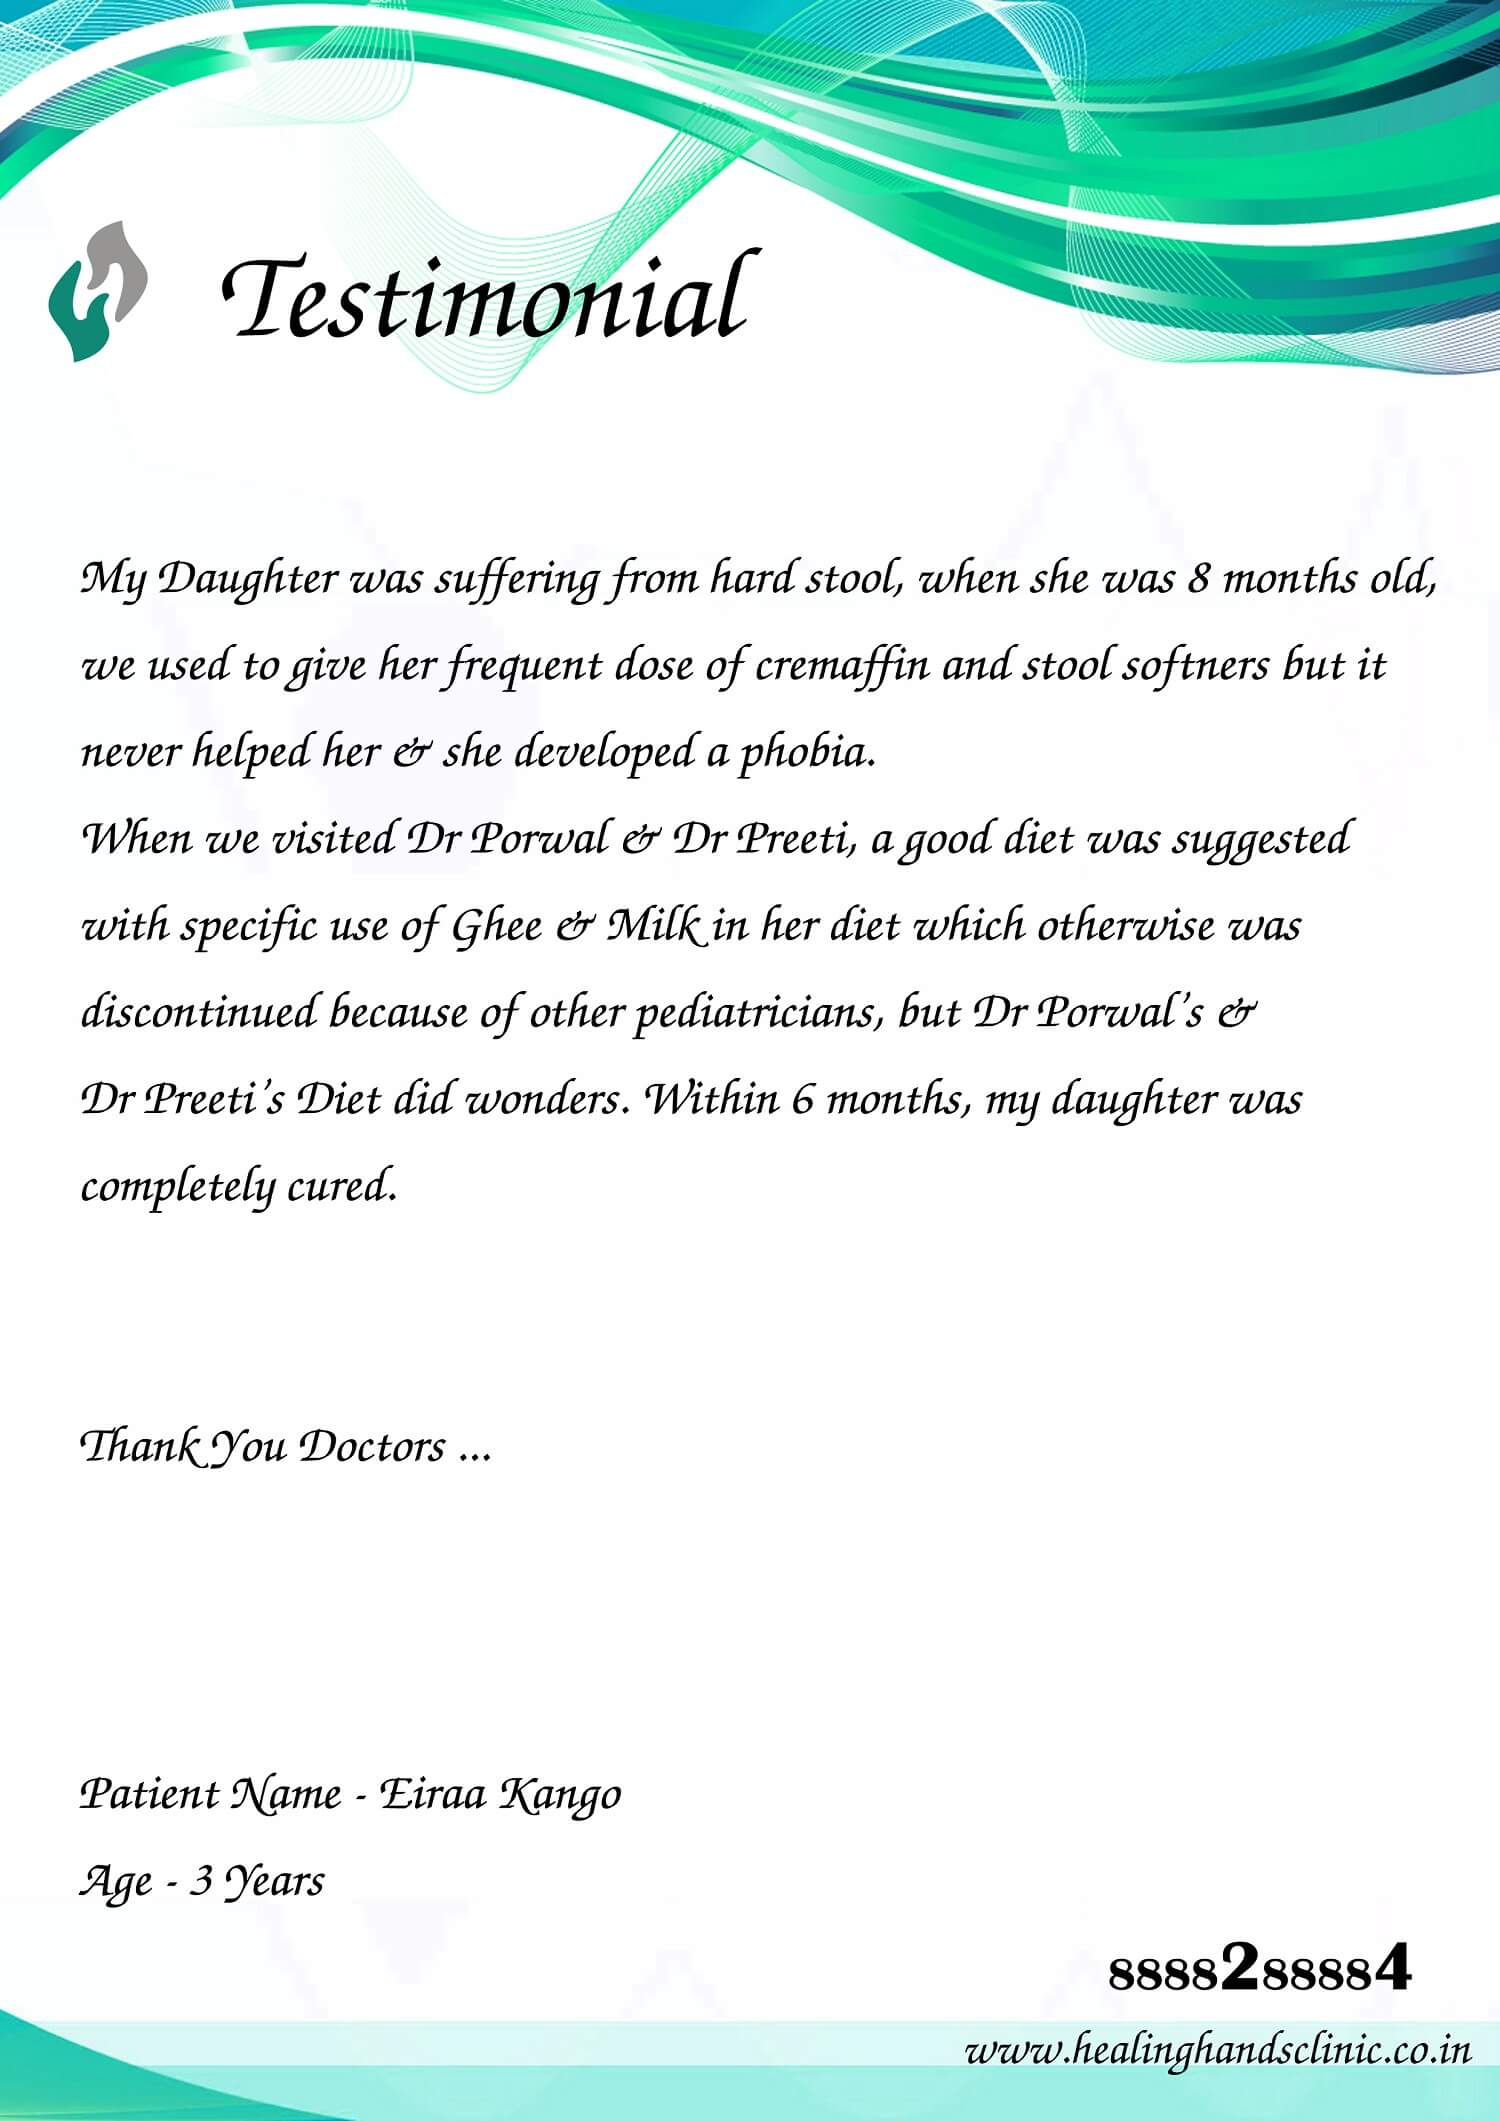 Testimonial after treatment of constipation by diet and excercise